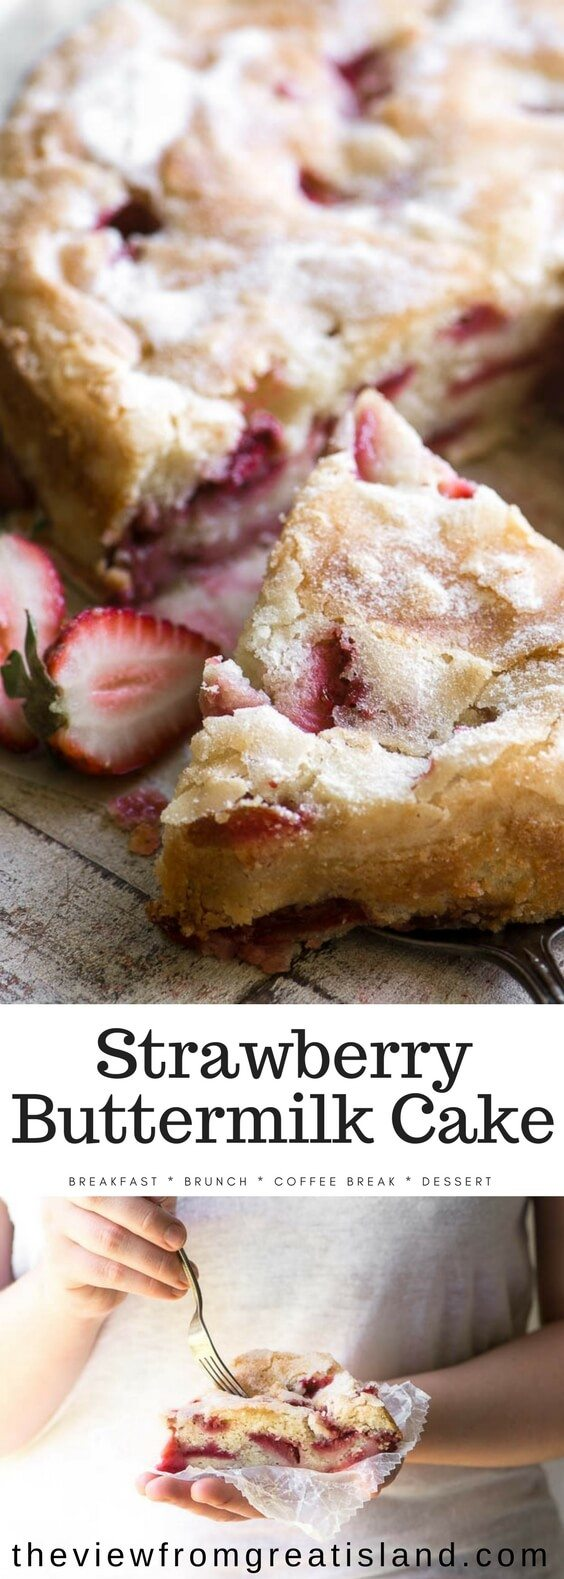 Strawberry Buttermilk Cake is an easy coffee cake loaded with fresh strawberries ~ make it for breakfast, brunch, or dessert. This is the perfect spring breakfast cake. #cake #coffeecake #breakfastcake #strawberries #strawberrycake #brunch #mothersday #easter #springcake